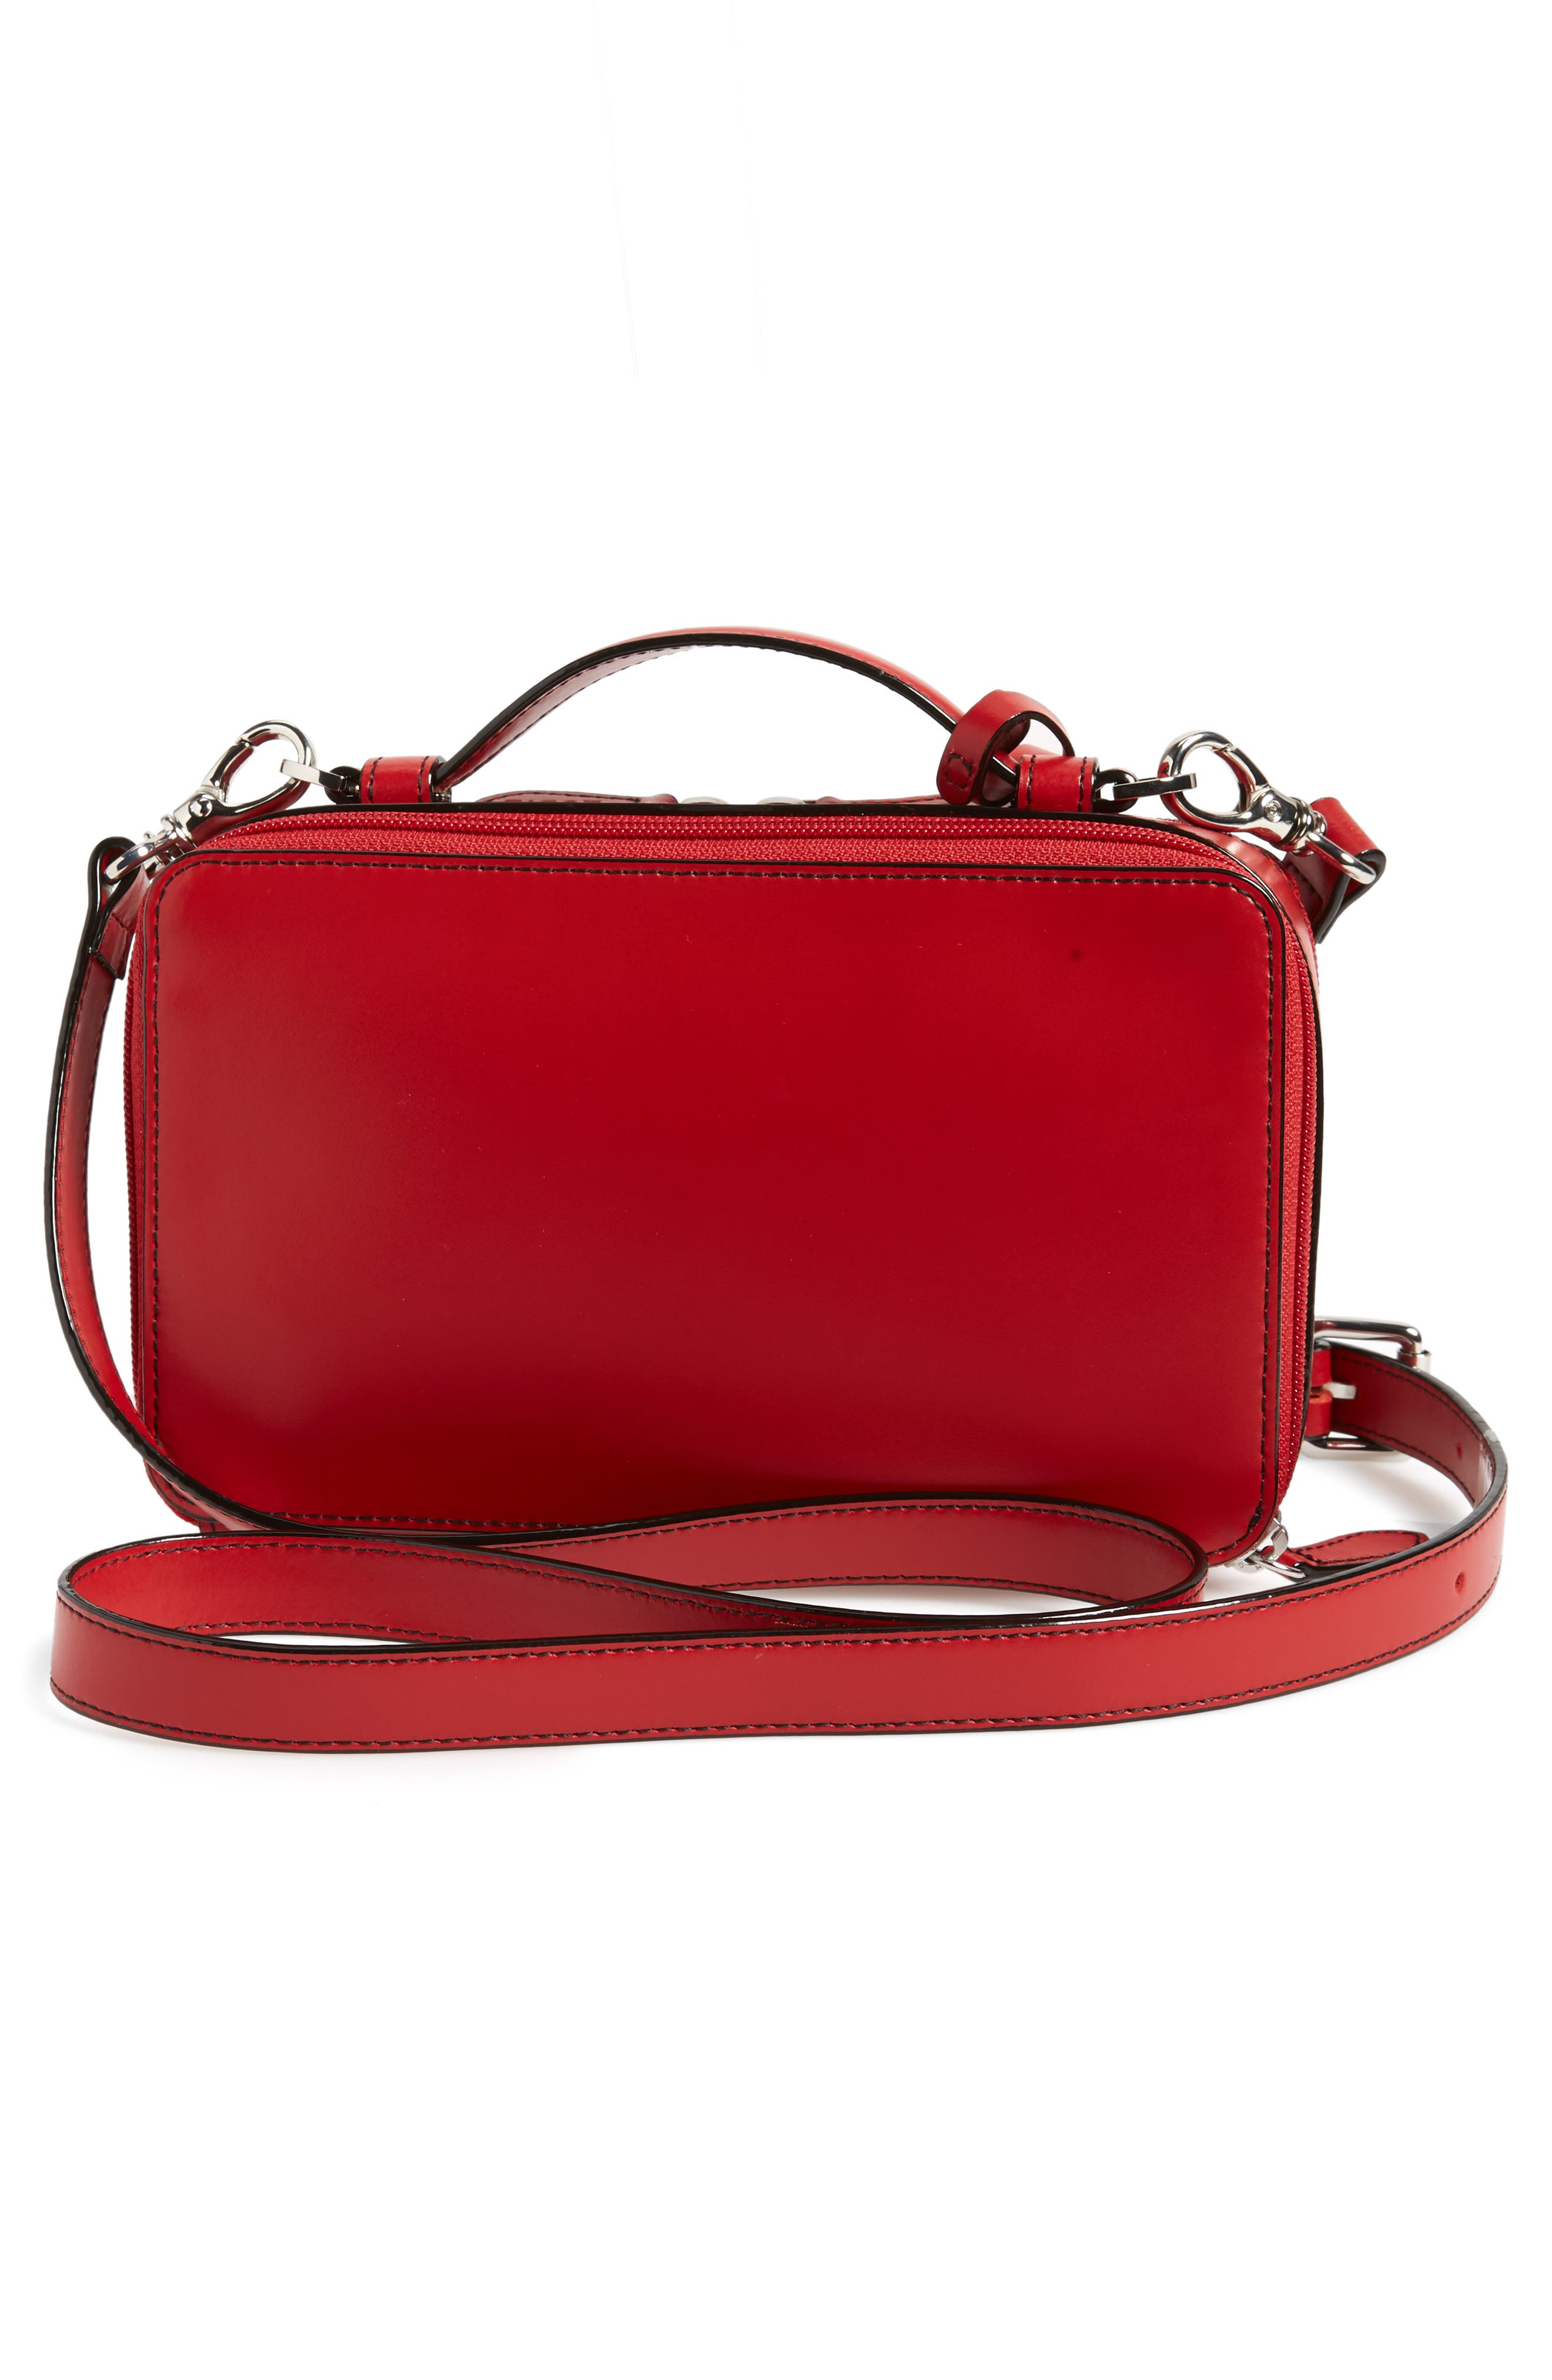 Downtown Sally RFID Zip-Around Leather Crossbody Bag,                             Alternate thumbnail 3, color,                             RED